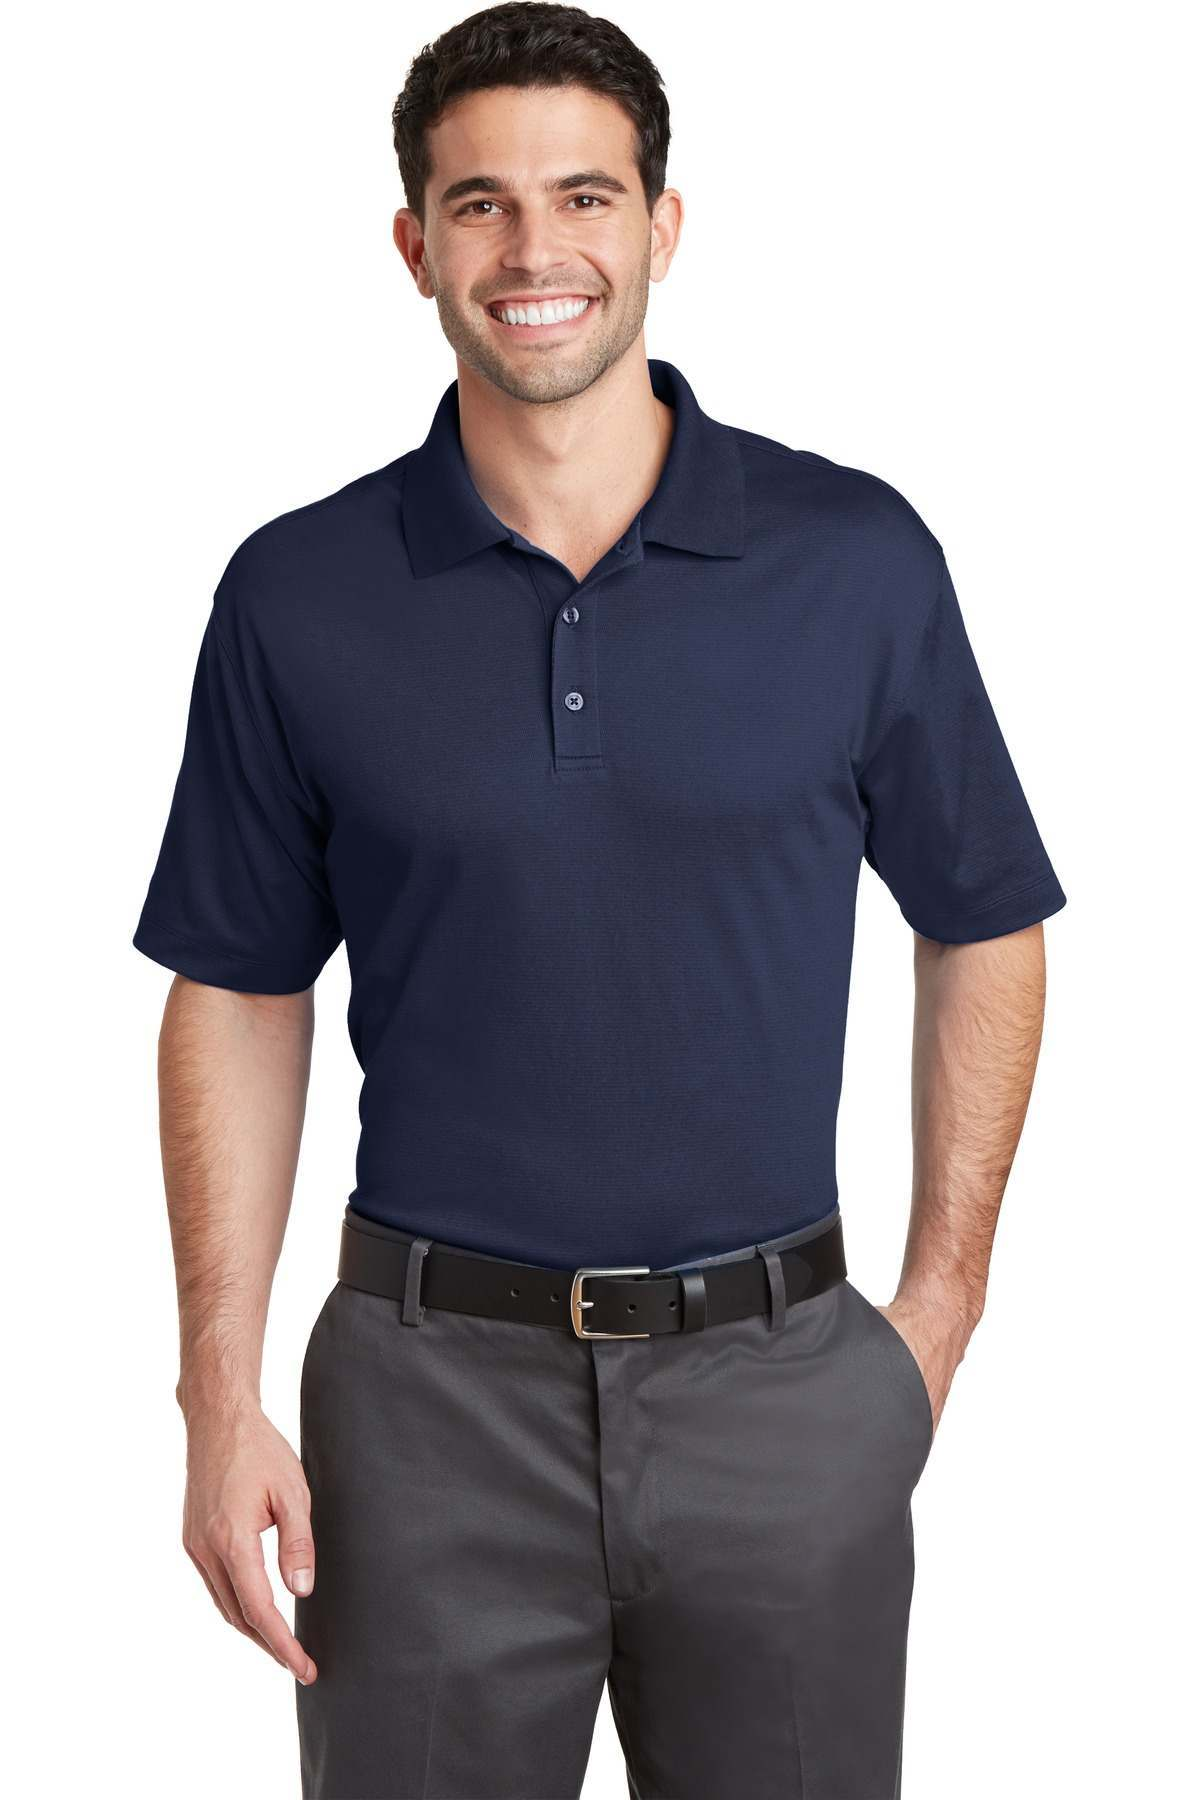 9206620eeac Port Authority® Rapid Dry™ Mesh Polo - Business Casual - Shops